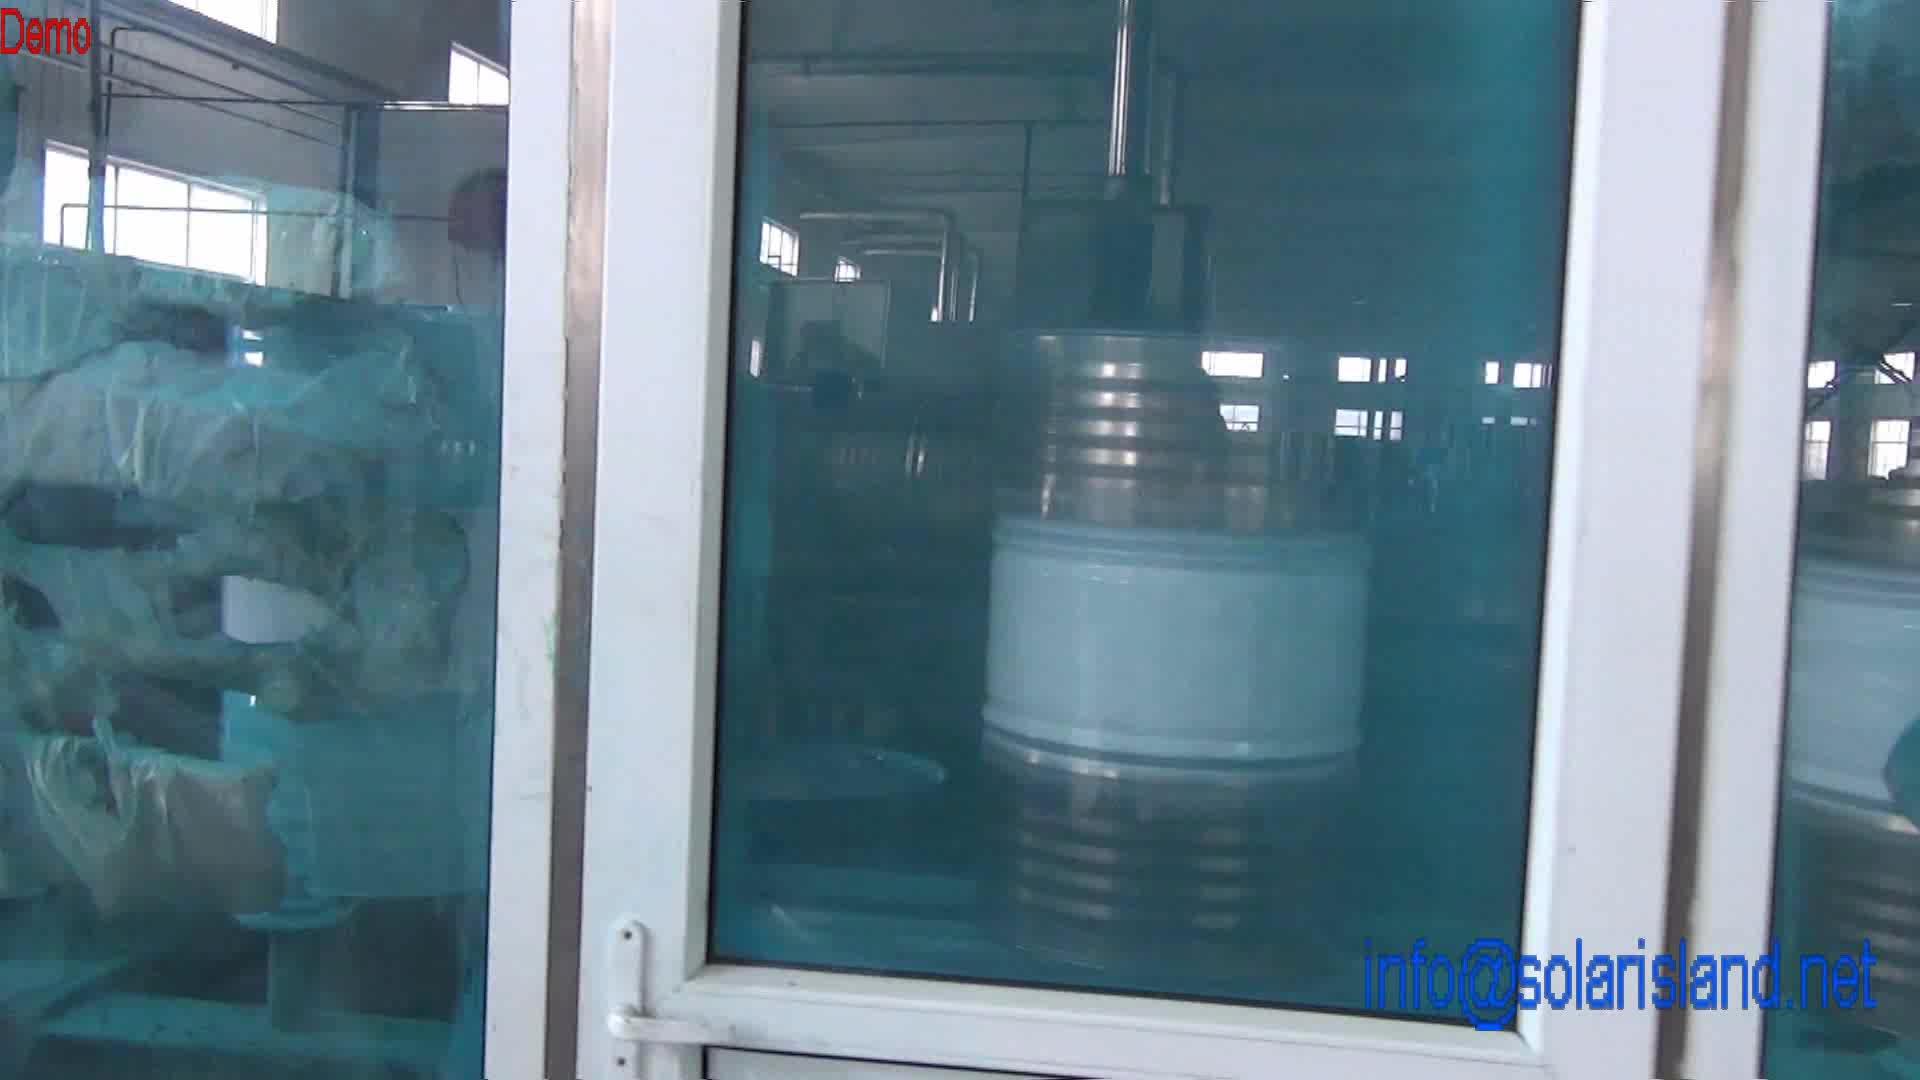 55 Gallon Steel Barrel Production Line